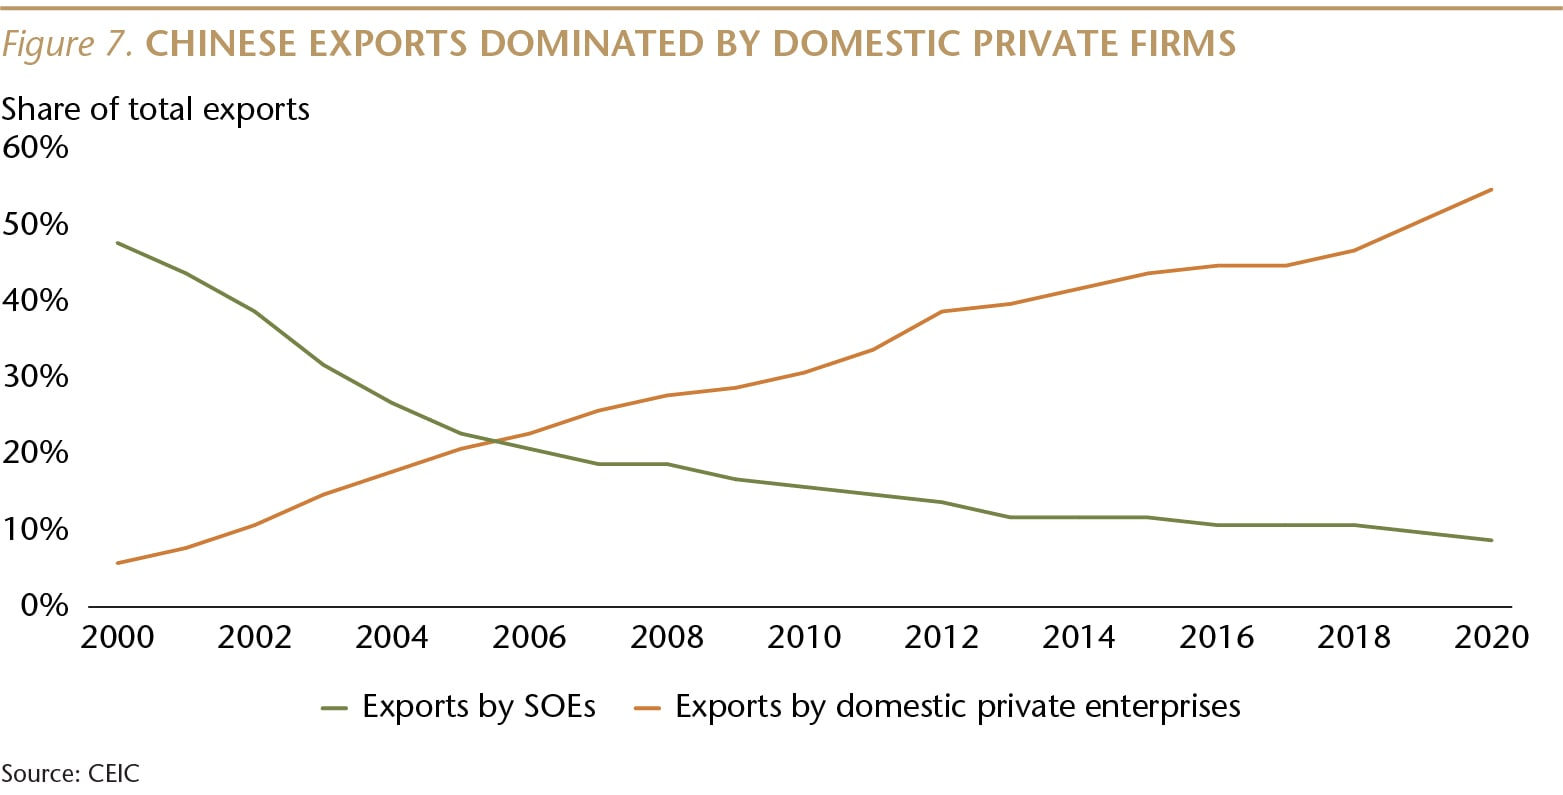 SI073_Figure 7_Chinese exports domintated by domestic firms_WEB-01-min.jpg